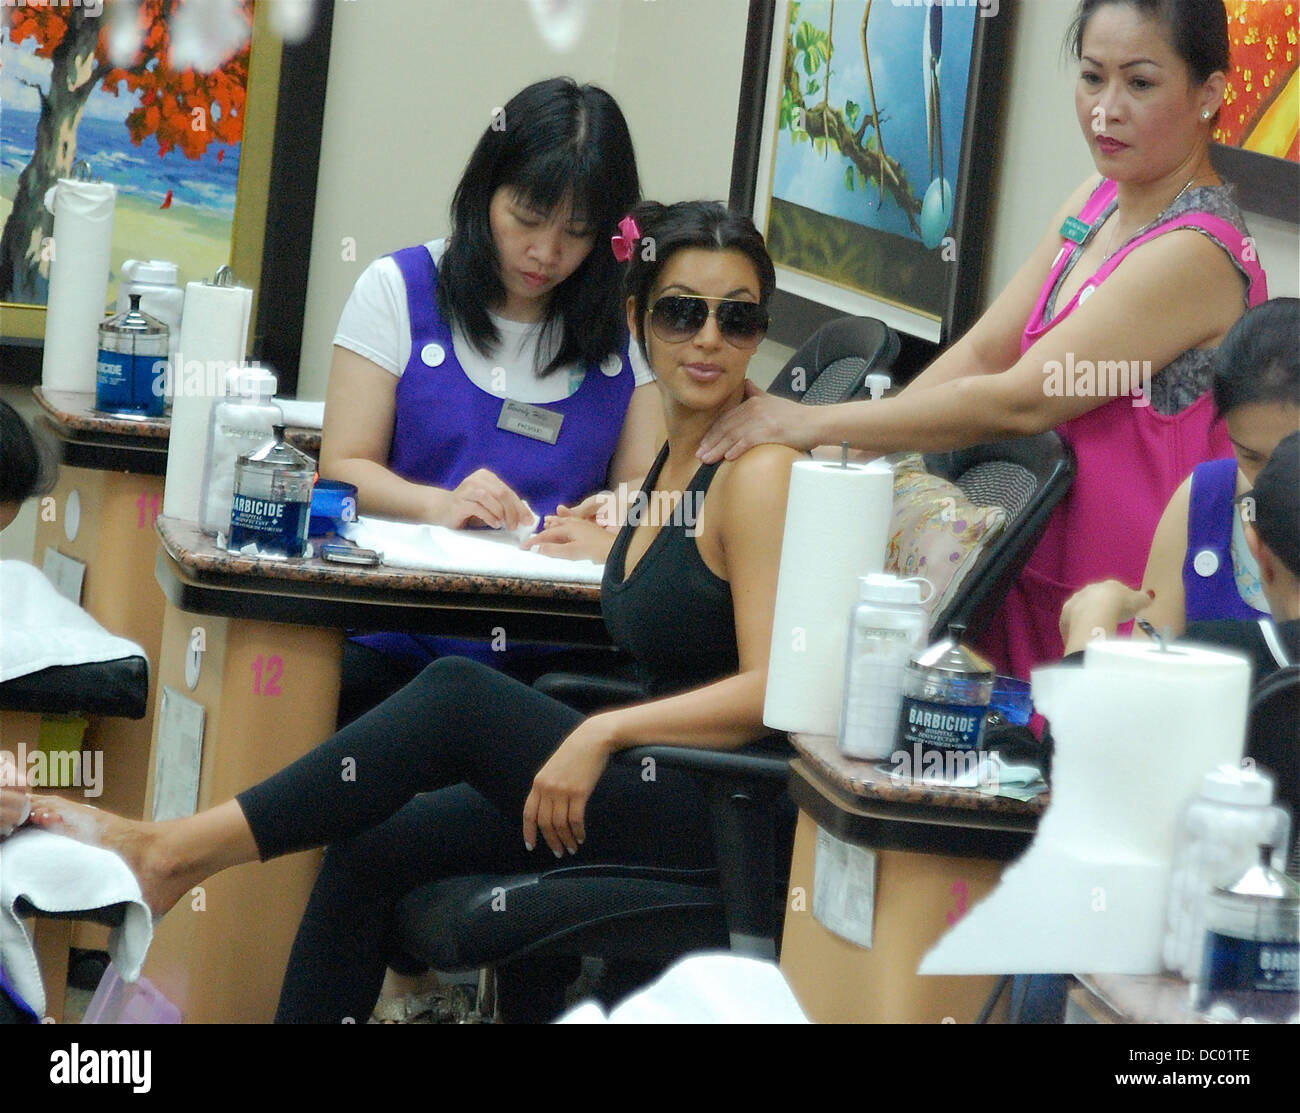 Mobile Nail Spa Los Angeles: Kim Kardashian Spotted Getting Her Nails Done At A Salon